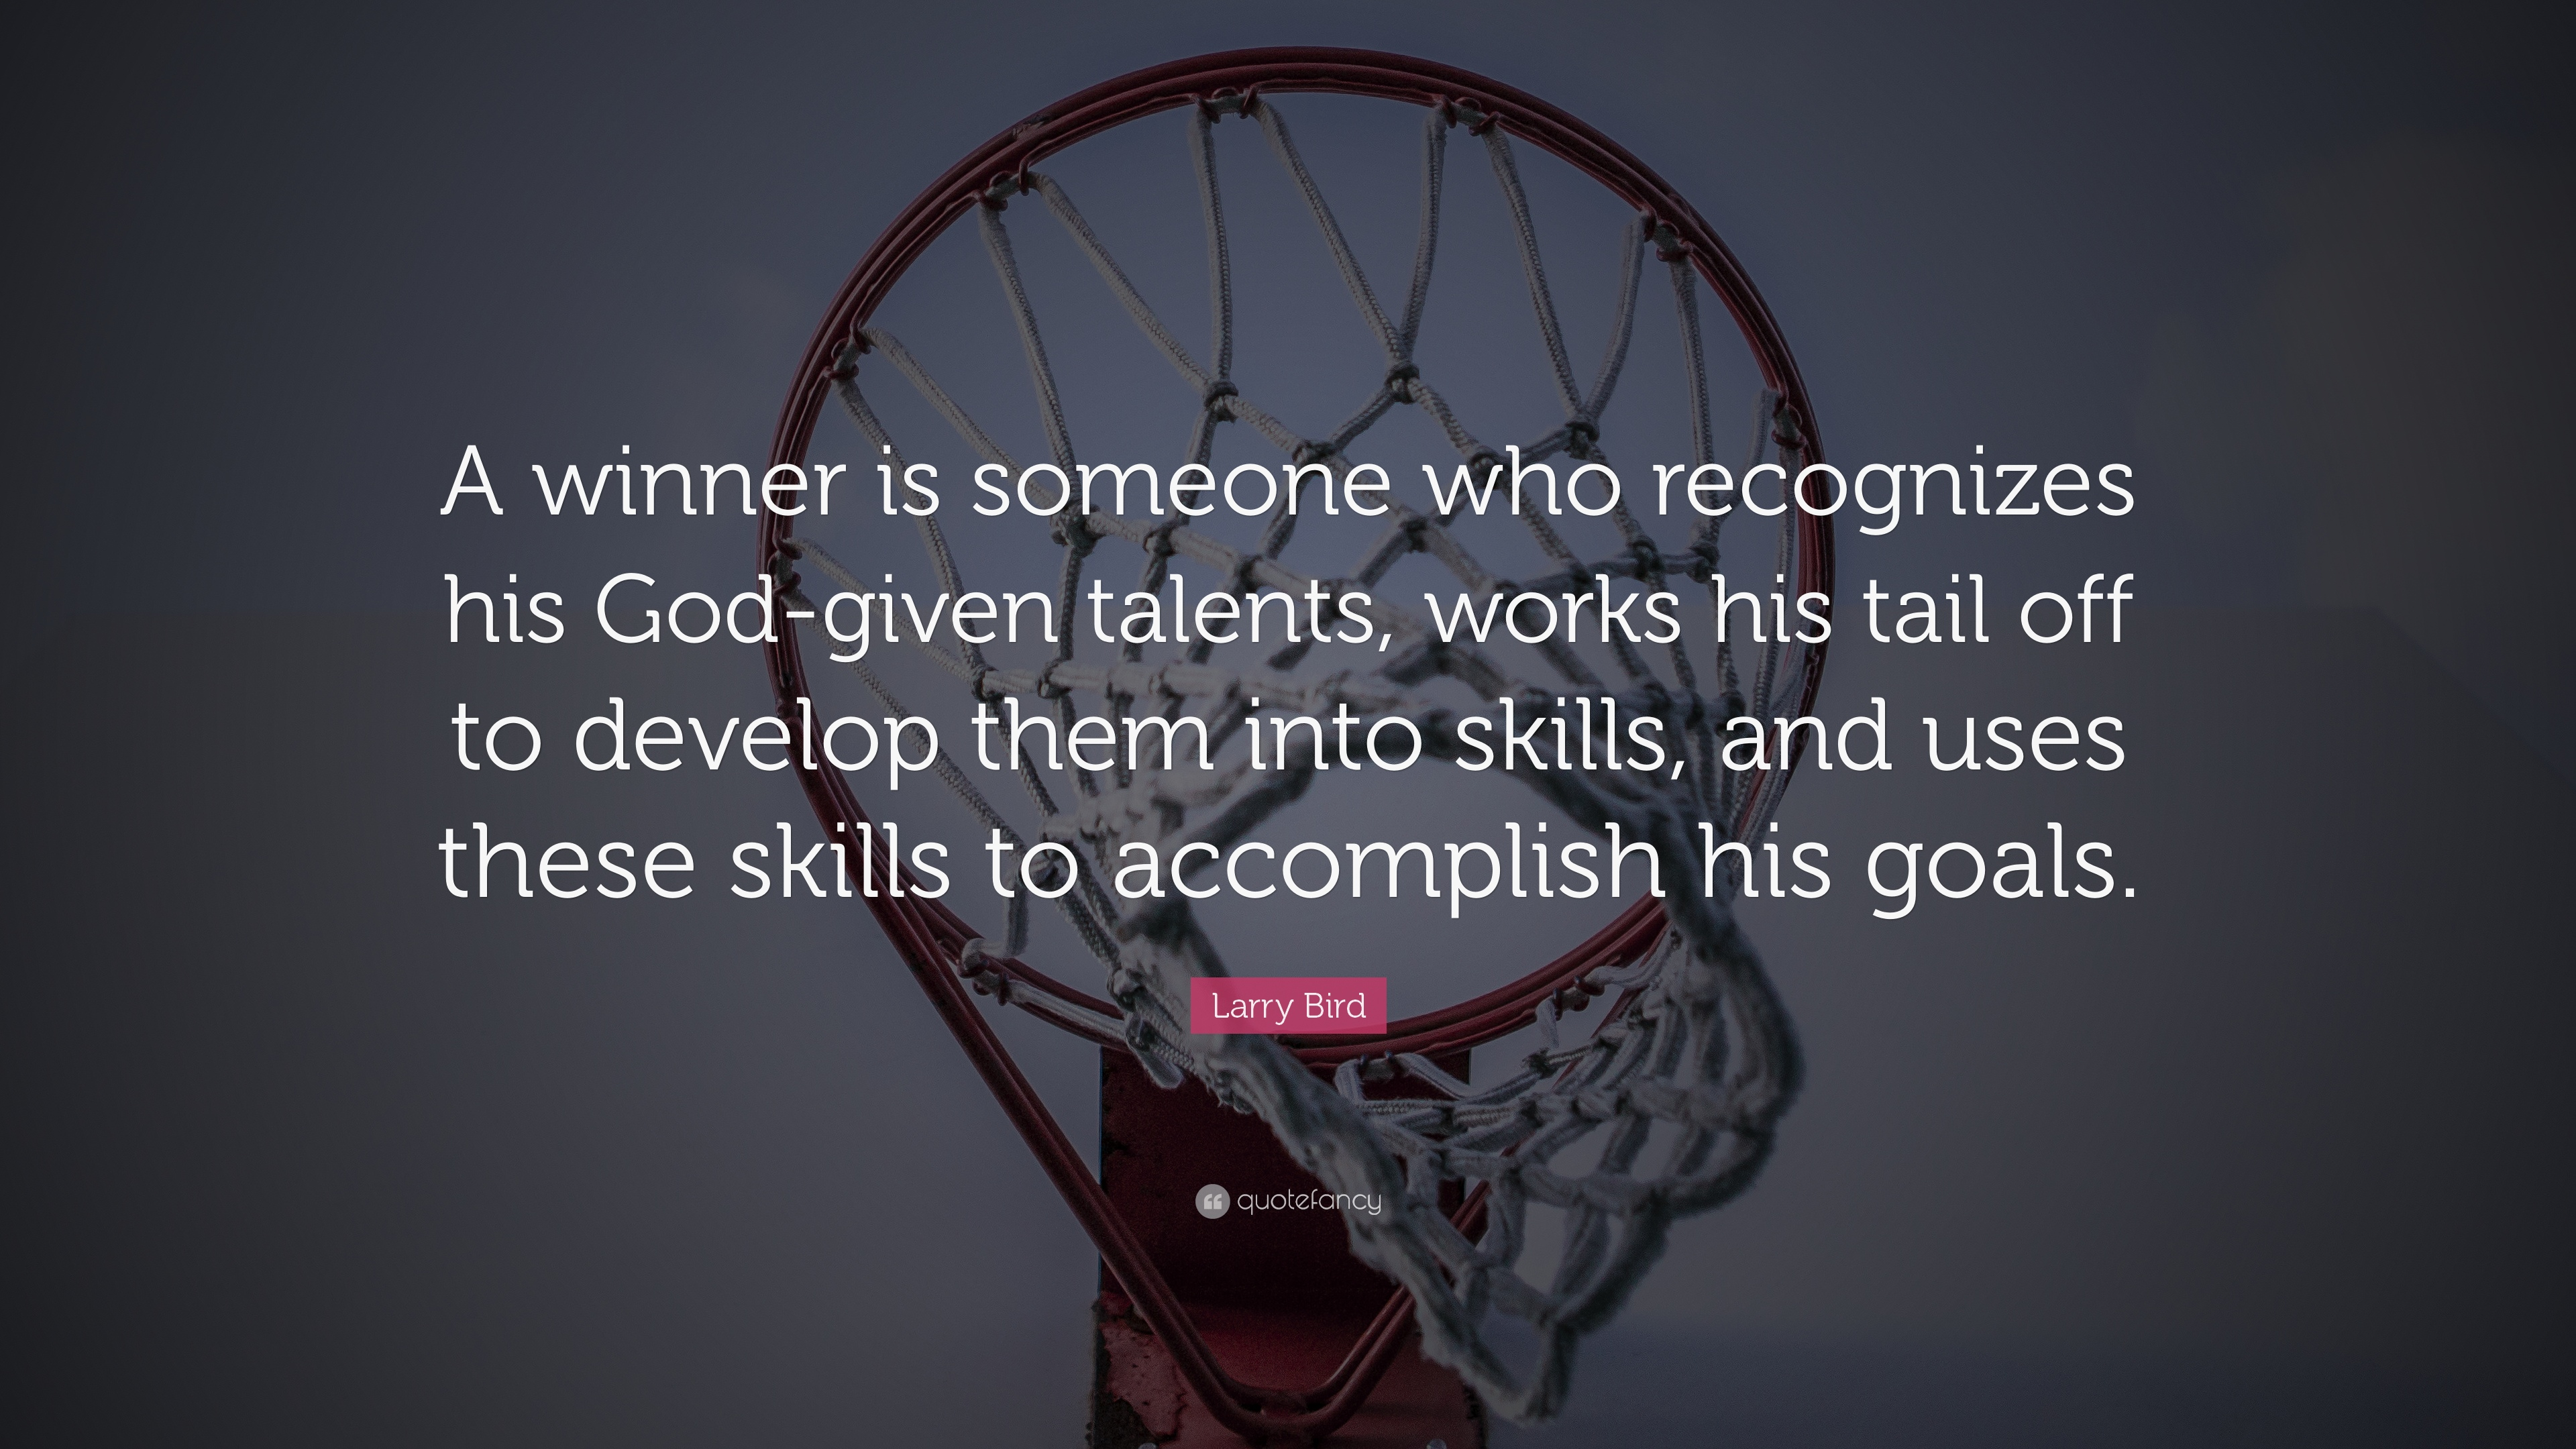 Basketball Quotes (40 wallpapers) - Quotefancy